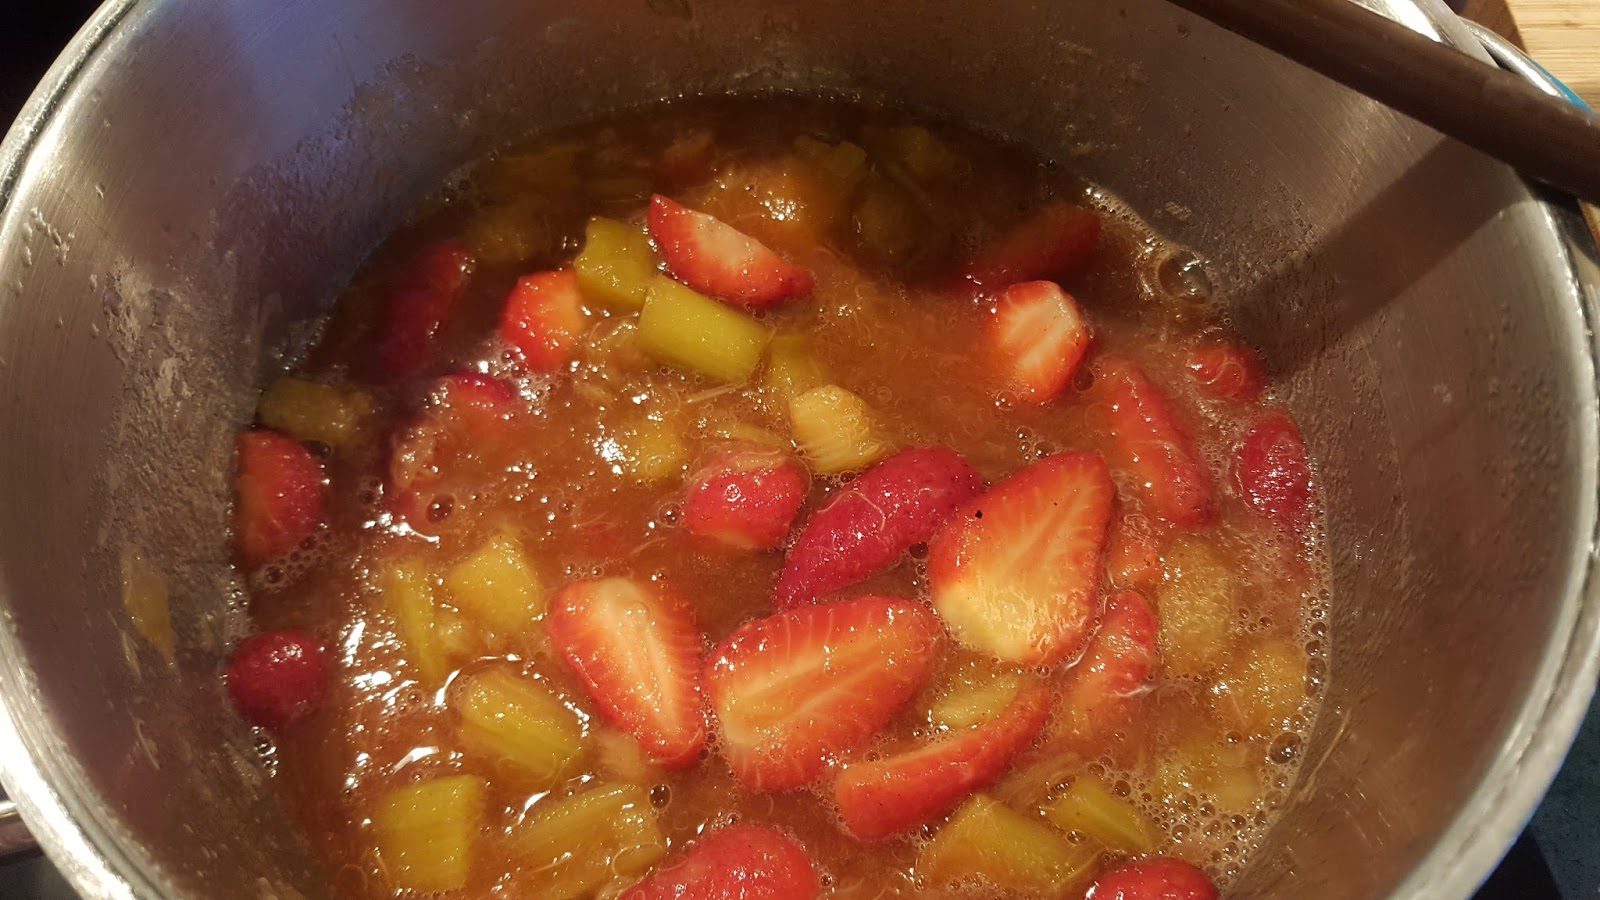 Foodoptions and Flavours: Rhubarb Strawberry Compote